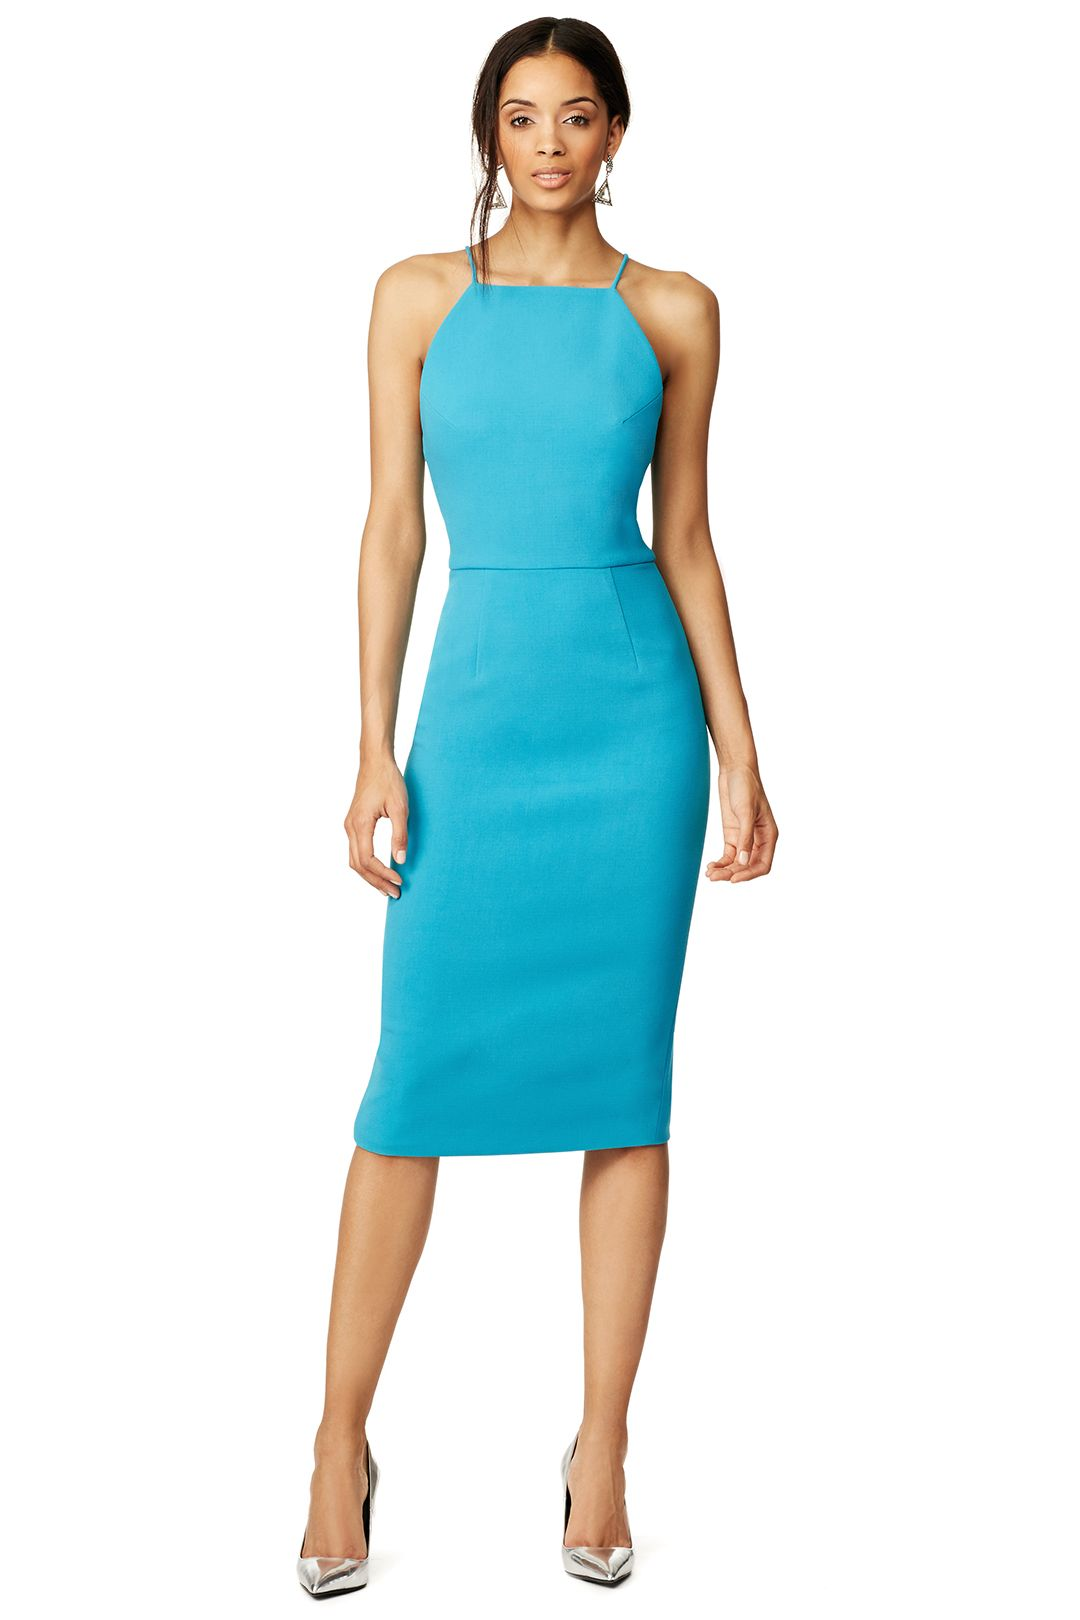 Evening wedding guest dresses  Casual and Dressy Casual Wedding Guest Dresses  Christian siriano